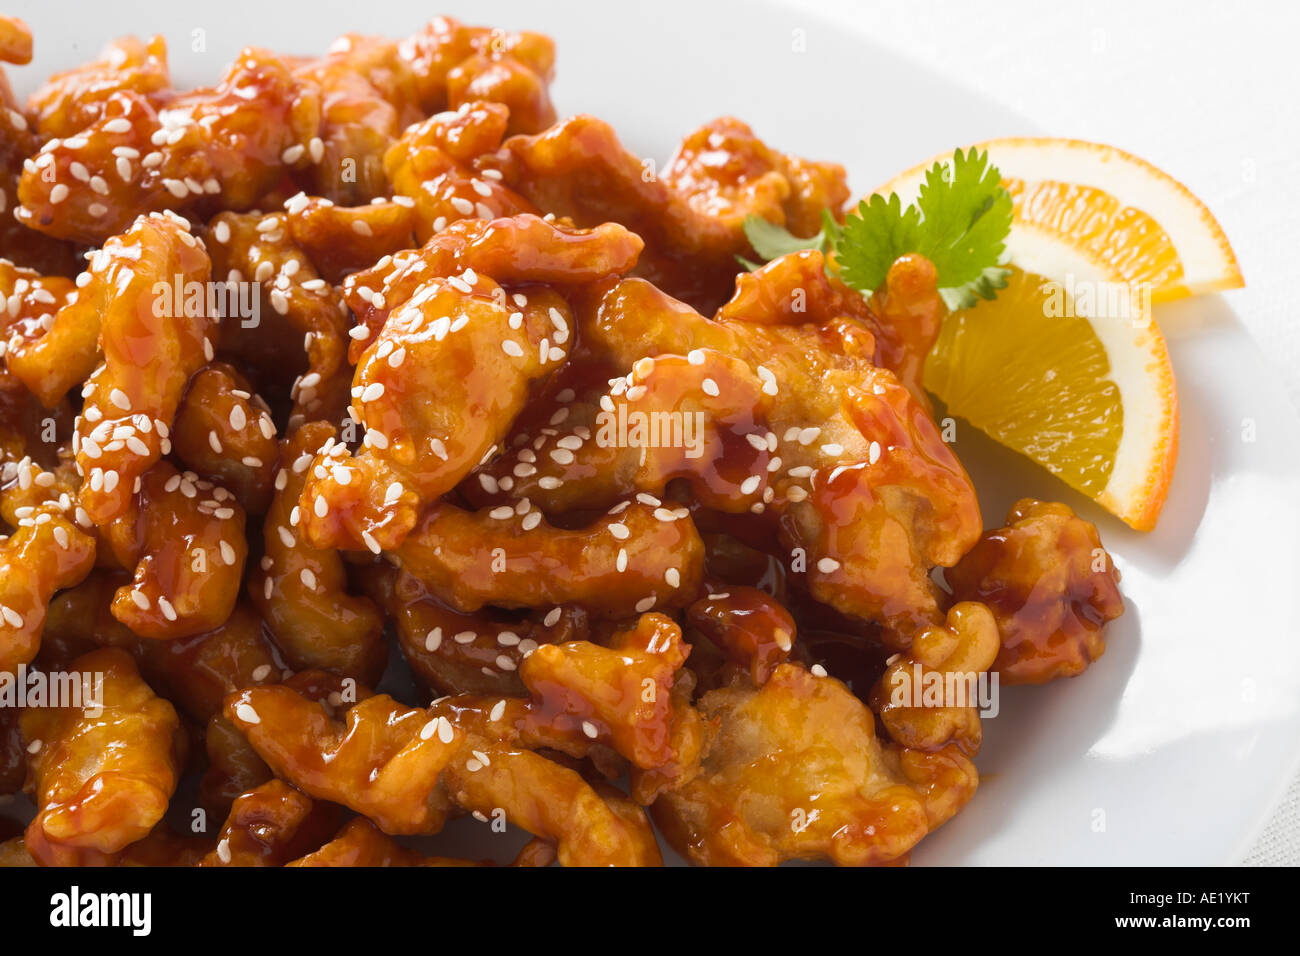 Orange Sesame chicken peel chinese food with seeds seed dish white plate delicious mouth watering savory savor eat - Stock Image